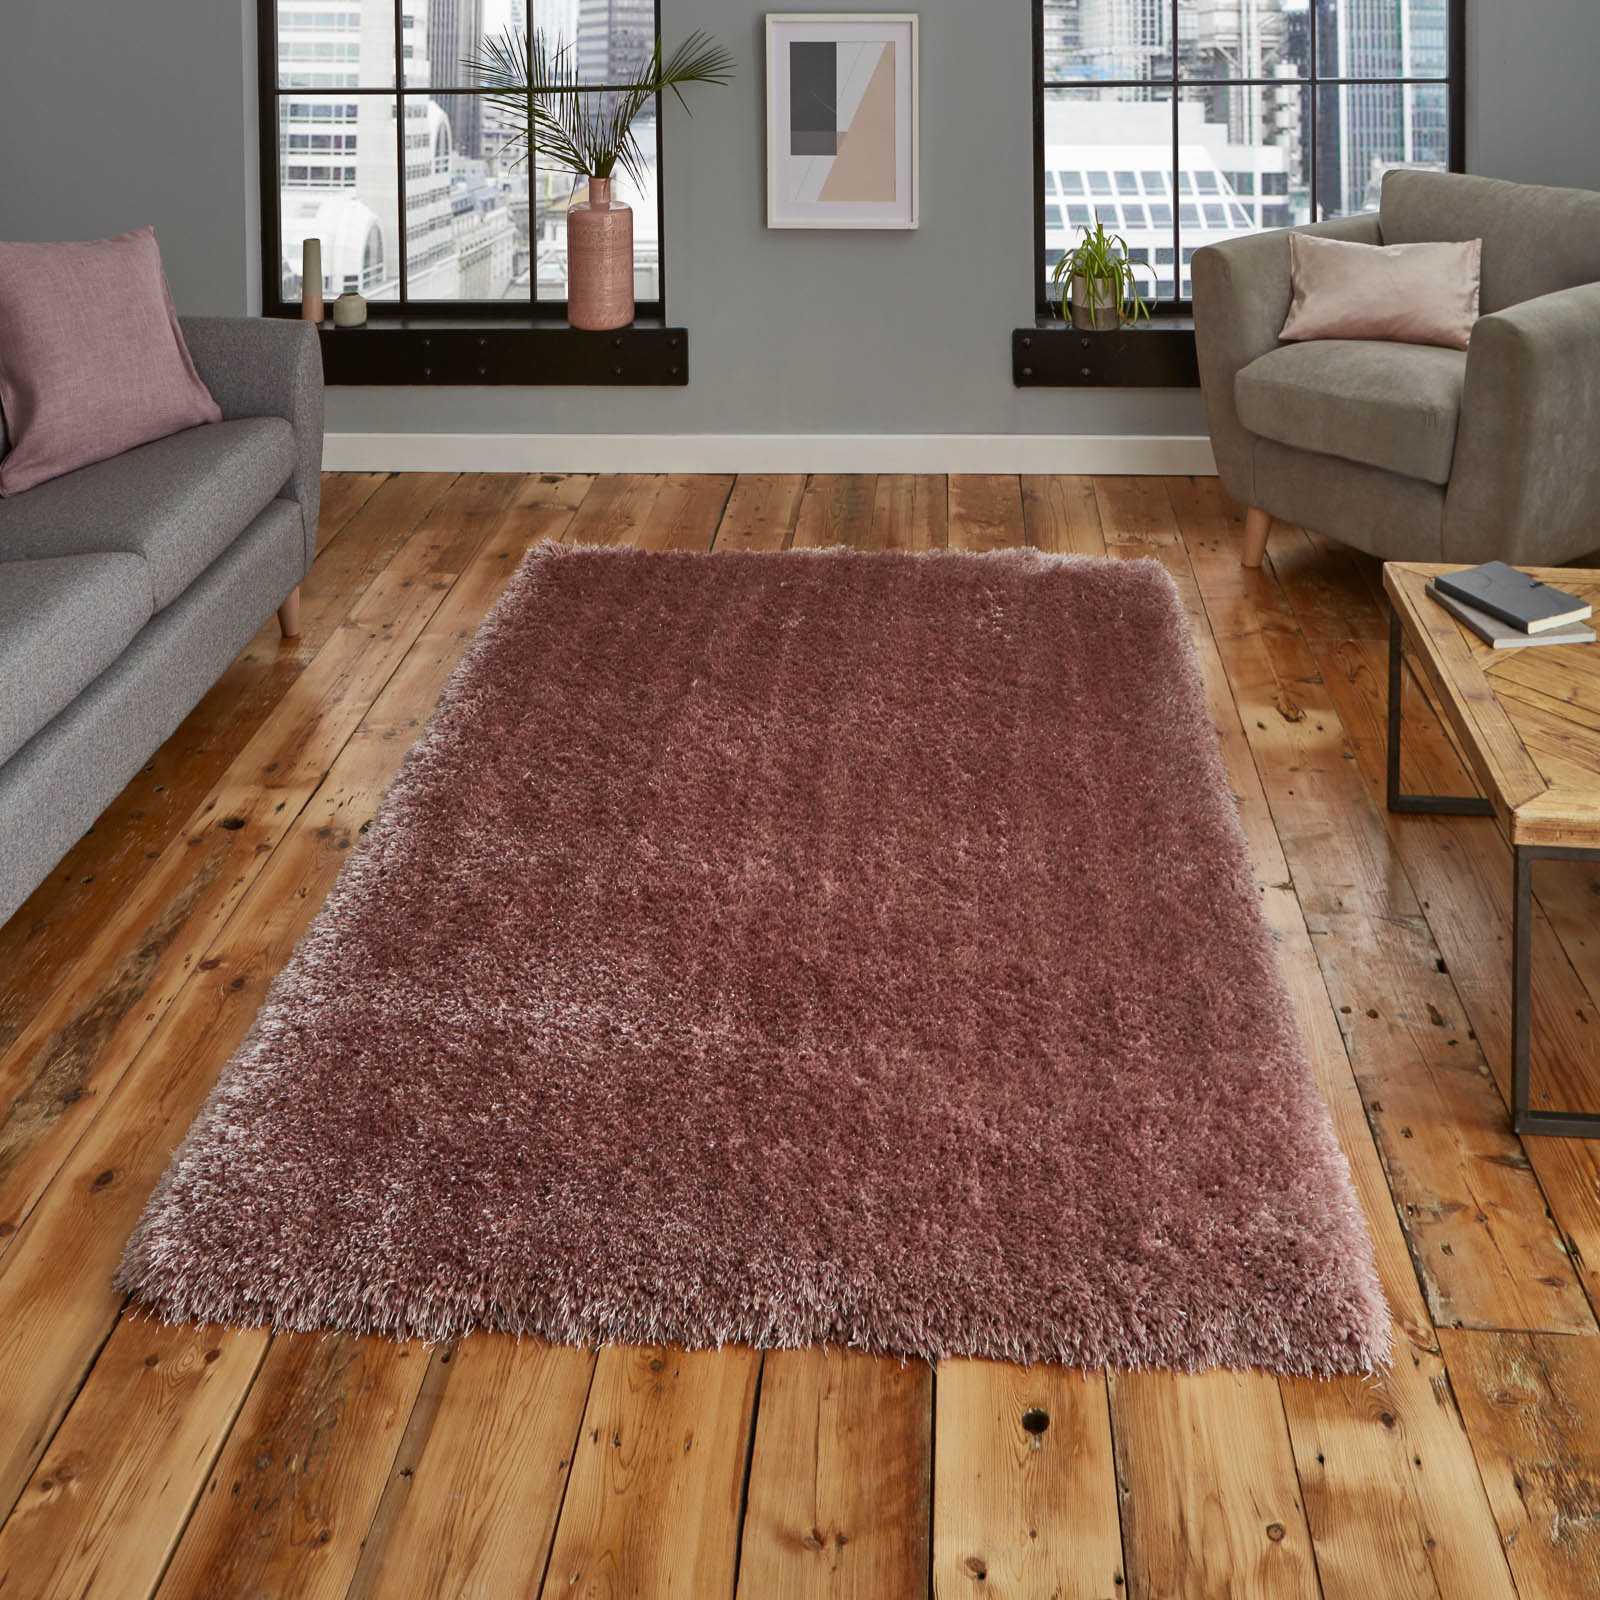 Montana Rug for student bedroom rugs